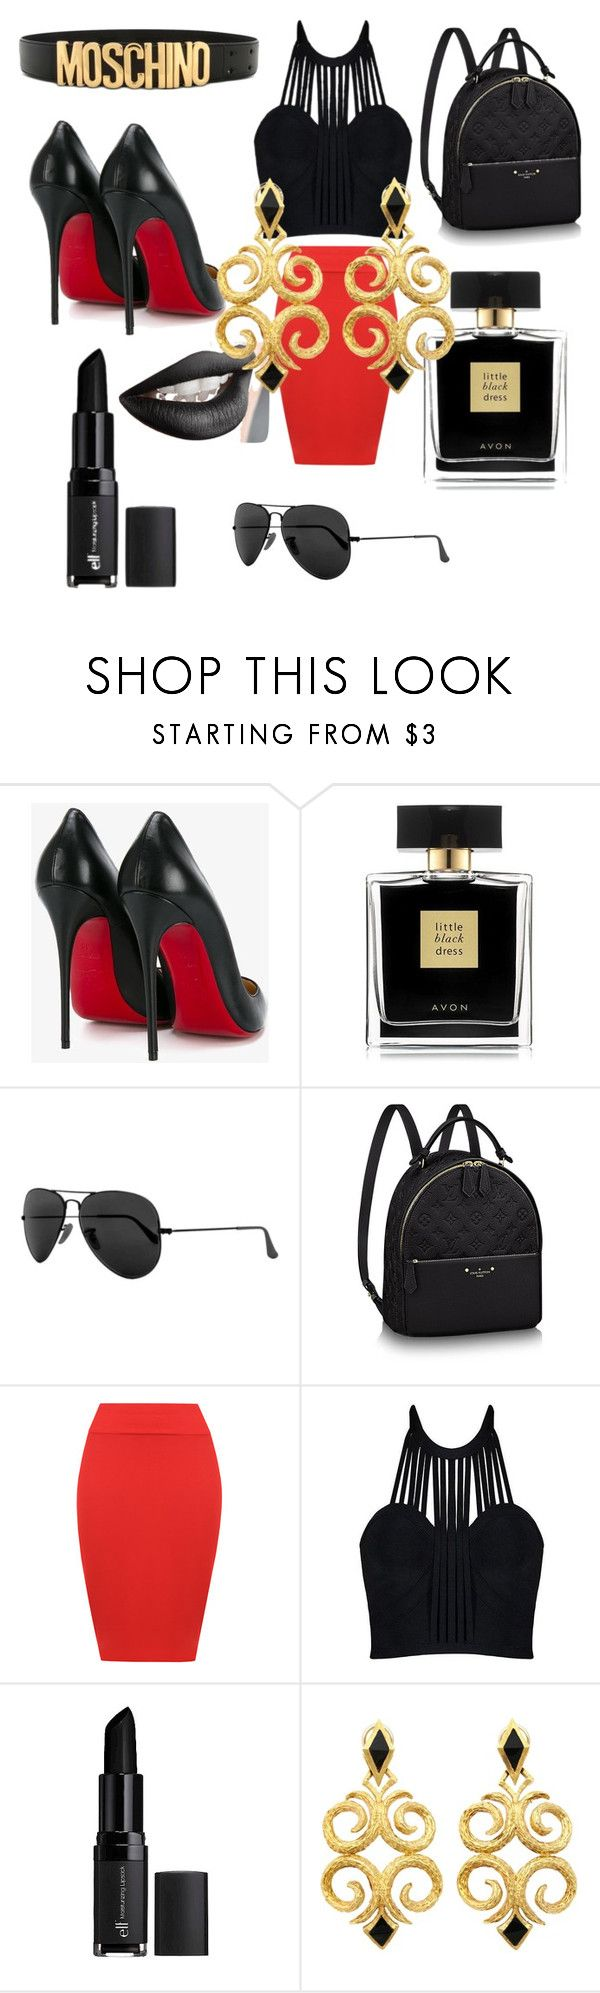 """MARGUERITE'S MASTERPIECE"" by marguerite-dillworth on Polyvore featuring Christian Louboutin, Avon, Ray-Ban, WearAll, e.l.f. and Moschino"